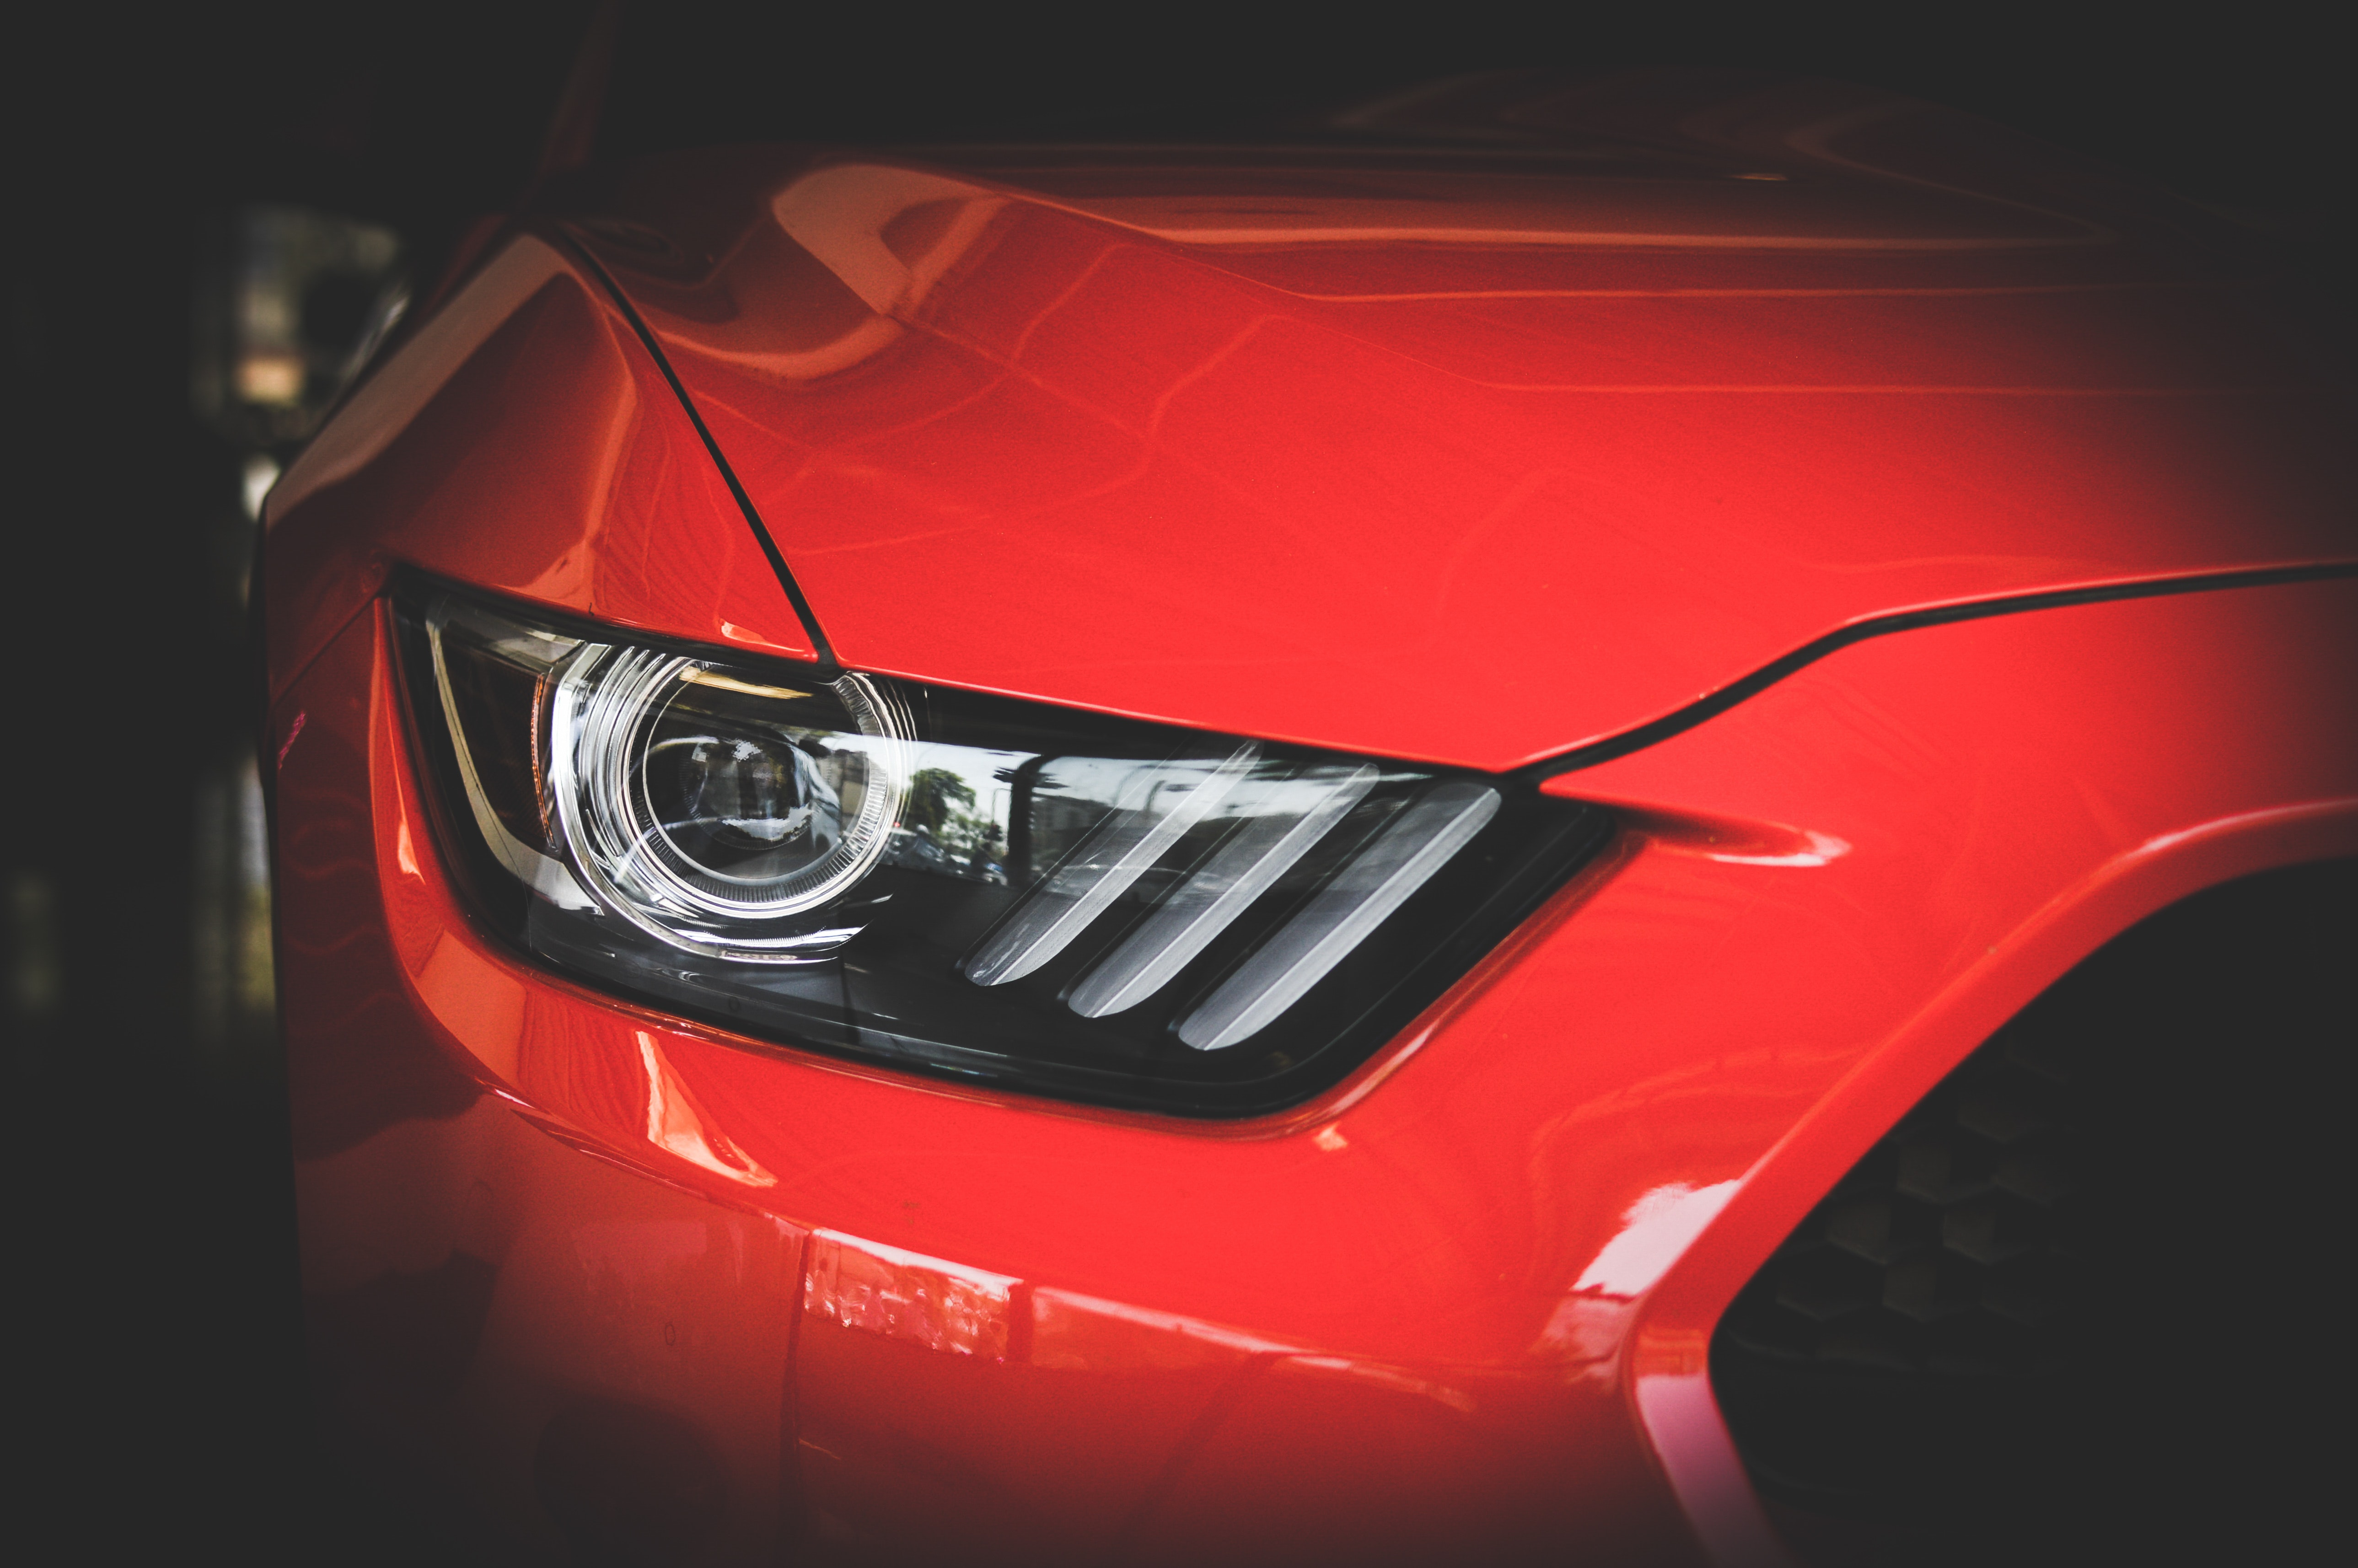 Find A Used Vehicle Model At Your Local Las Cruces, NM Used Car Dealership.